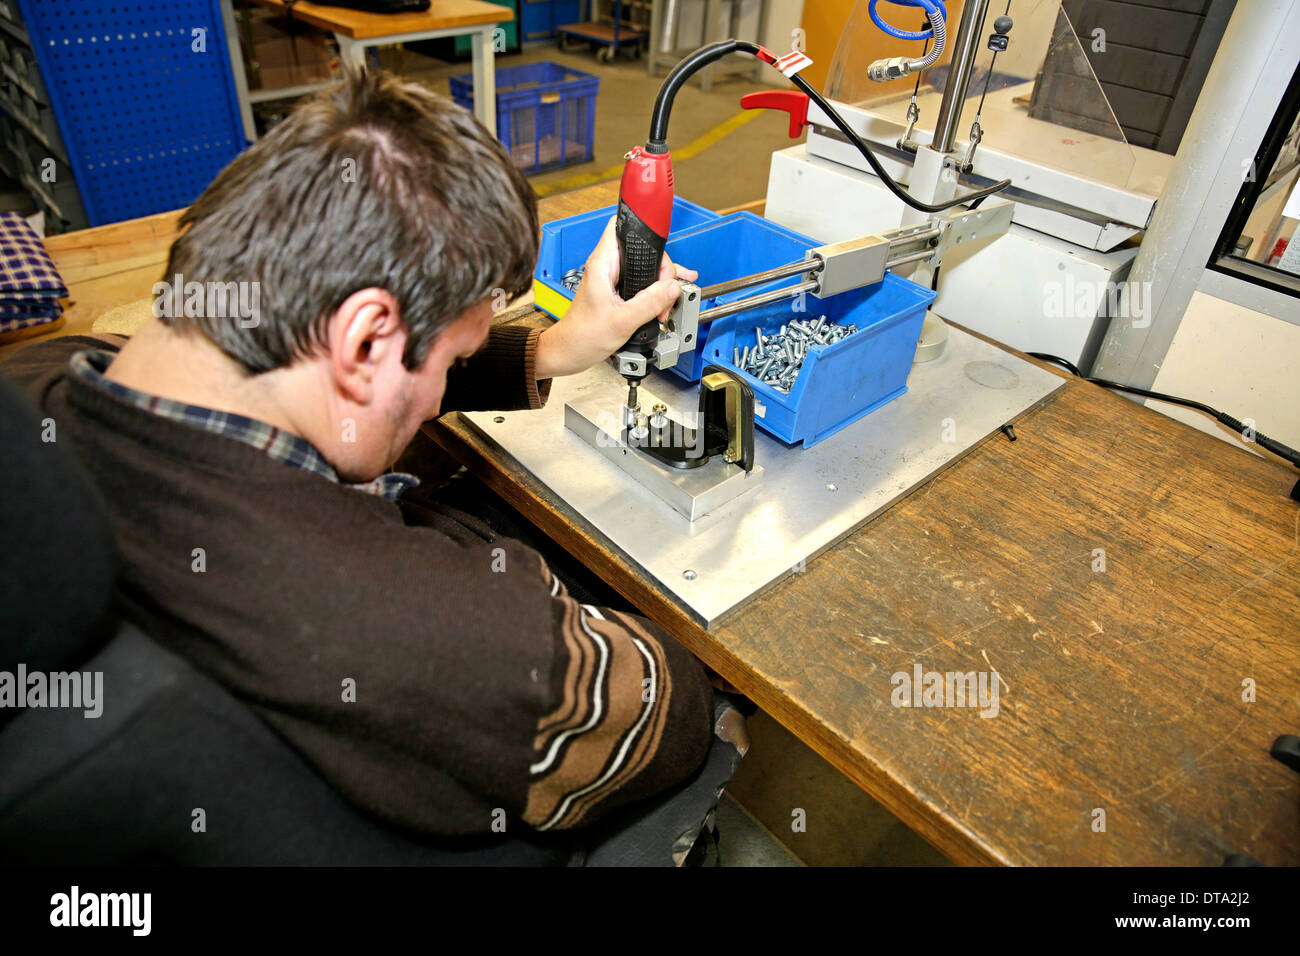 Mentally and physically disabled man at work - Stock Image